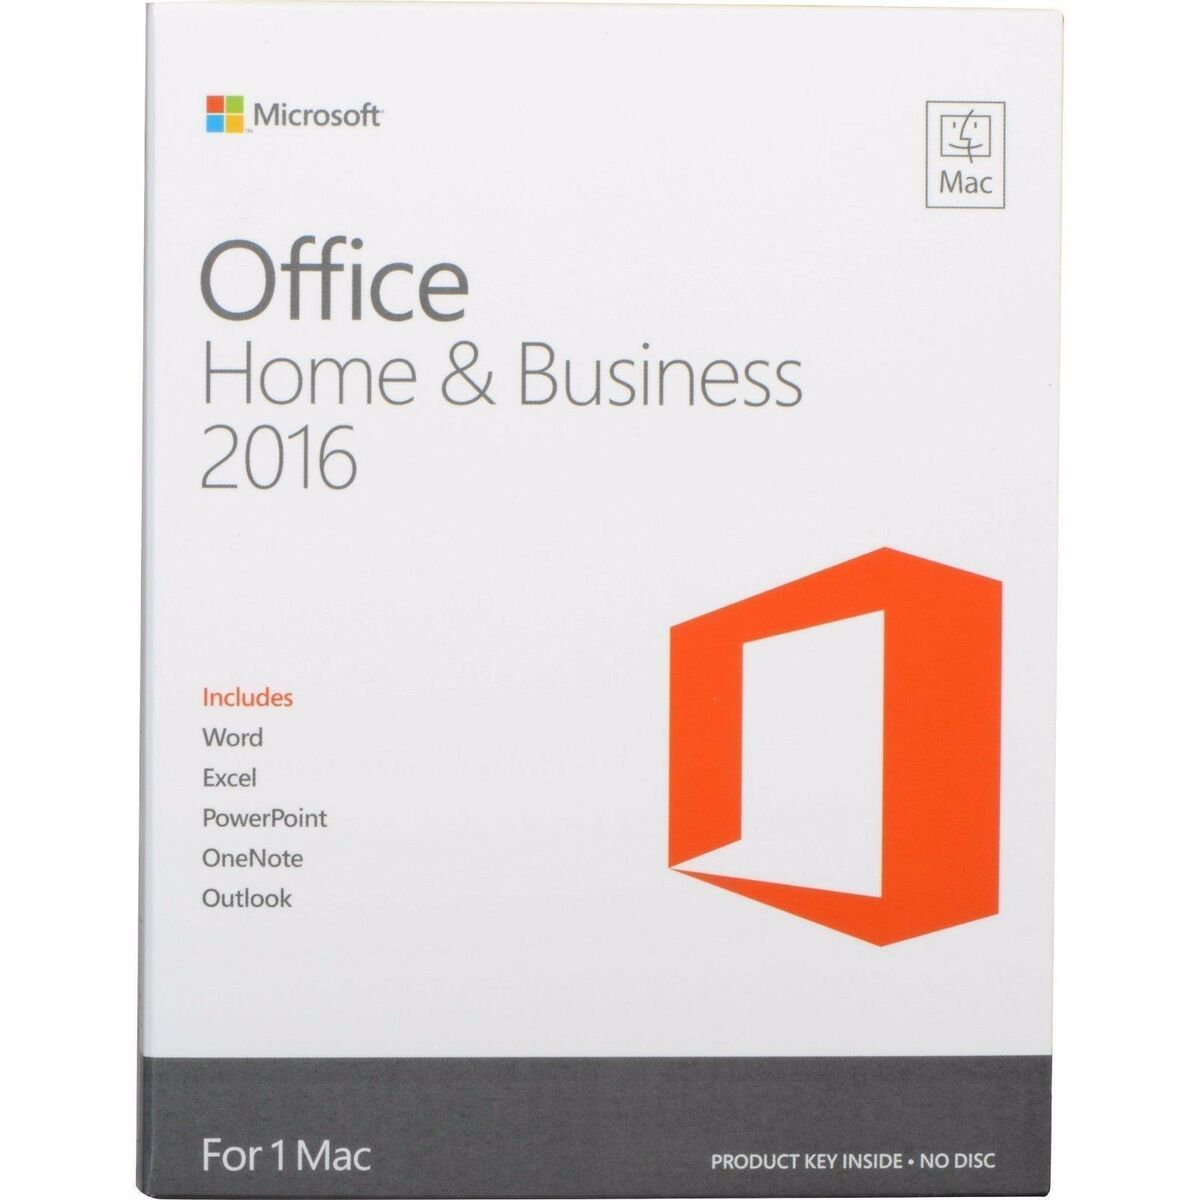 Microsoft office 2016 home and business for mac Prezzo: € 10,00